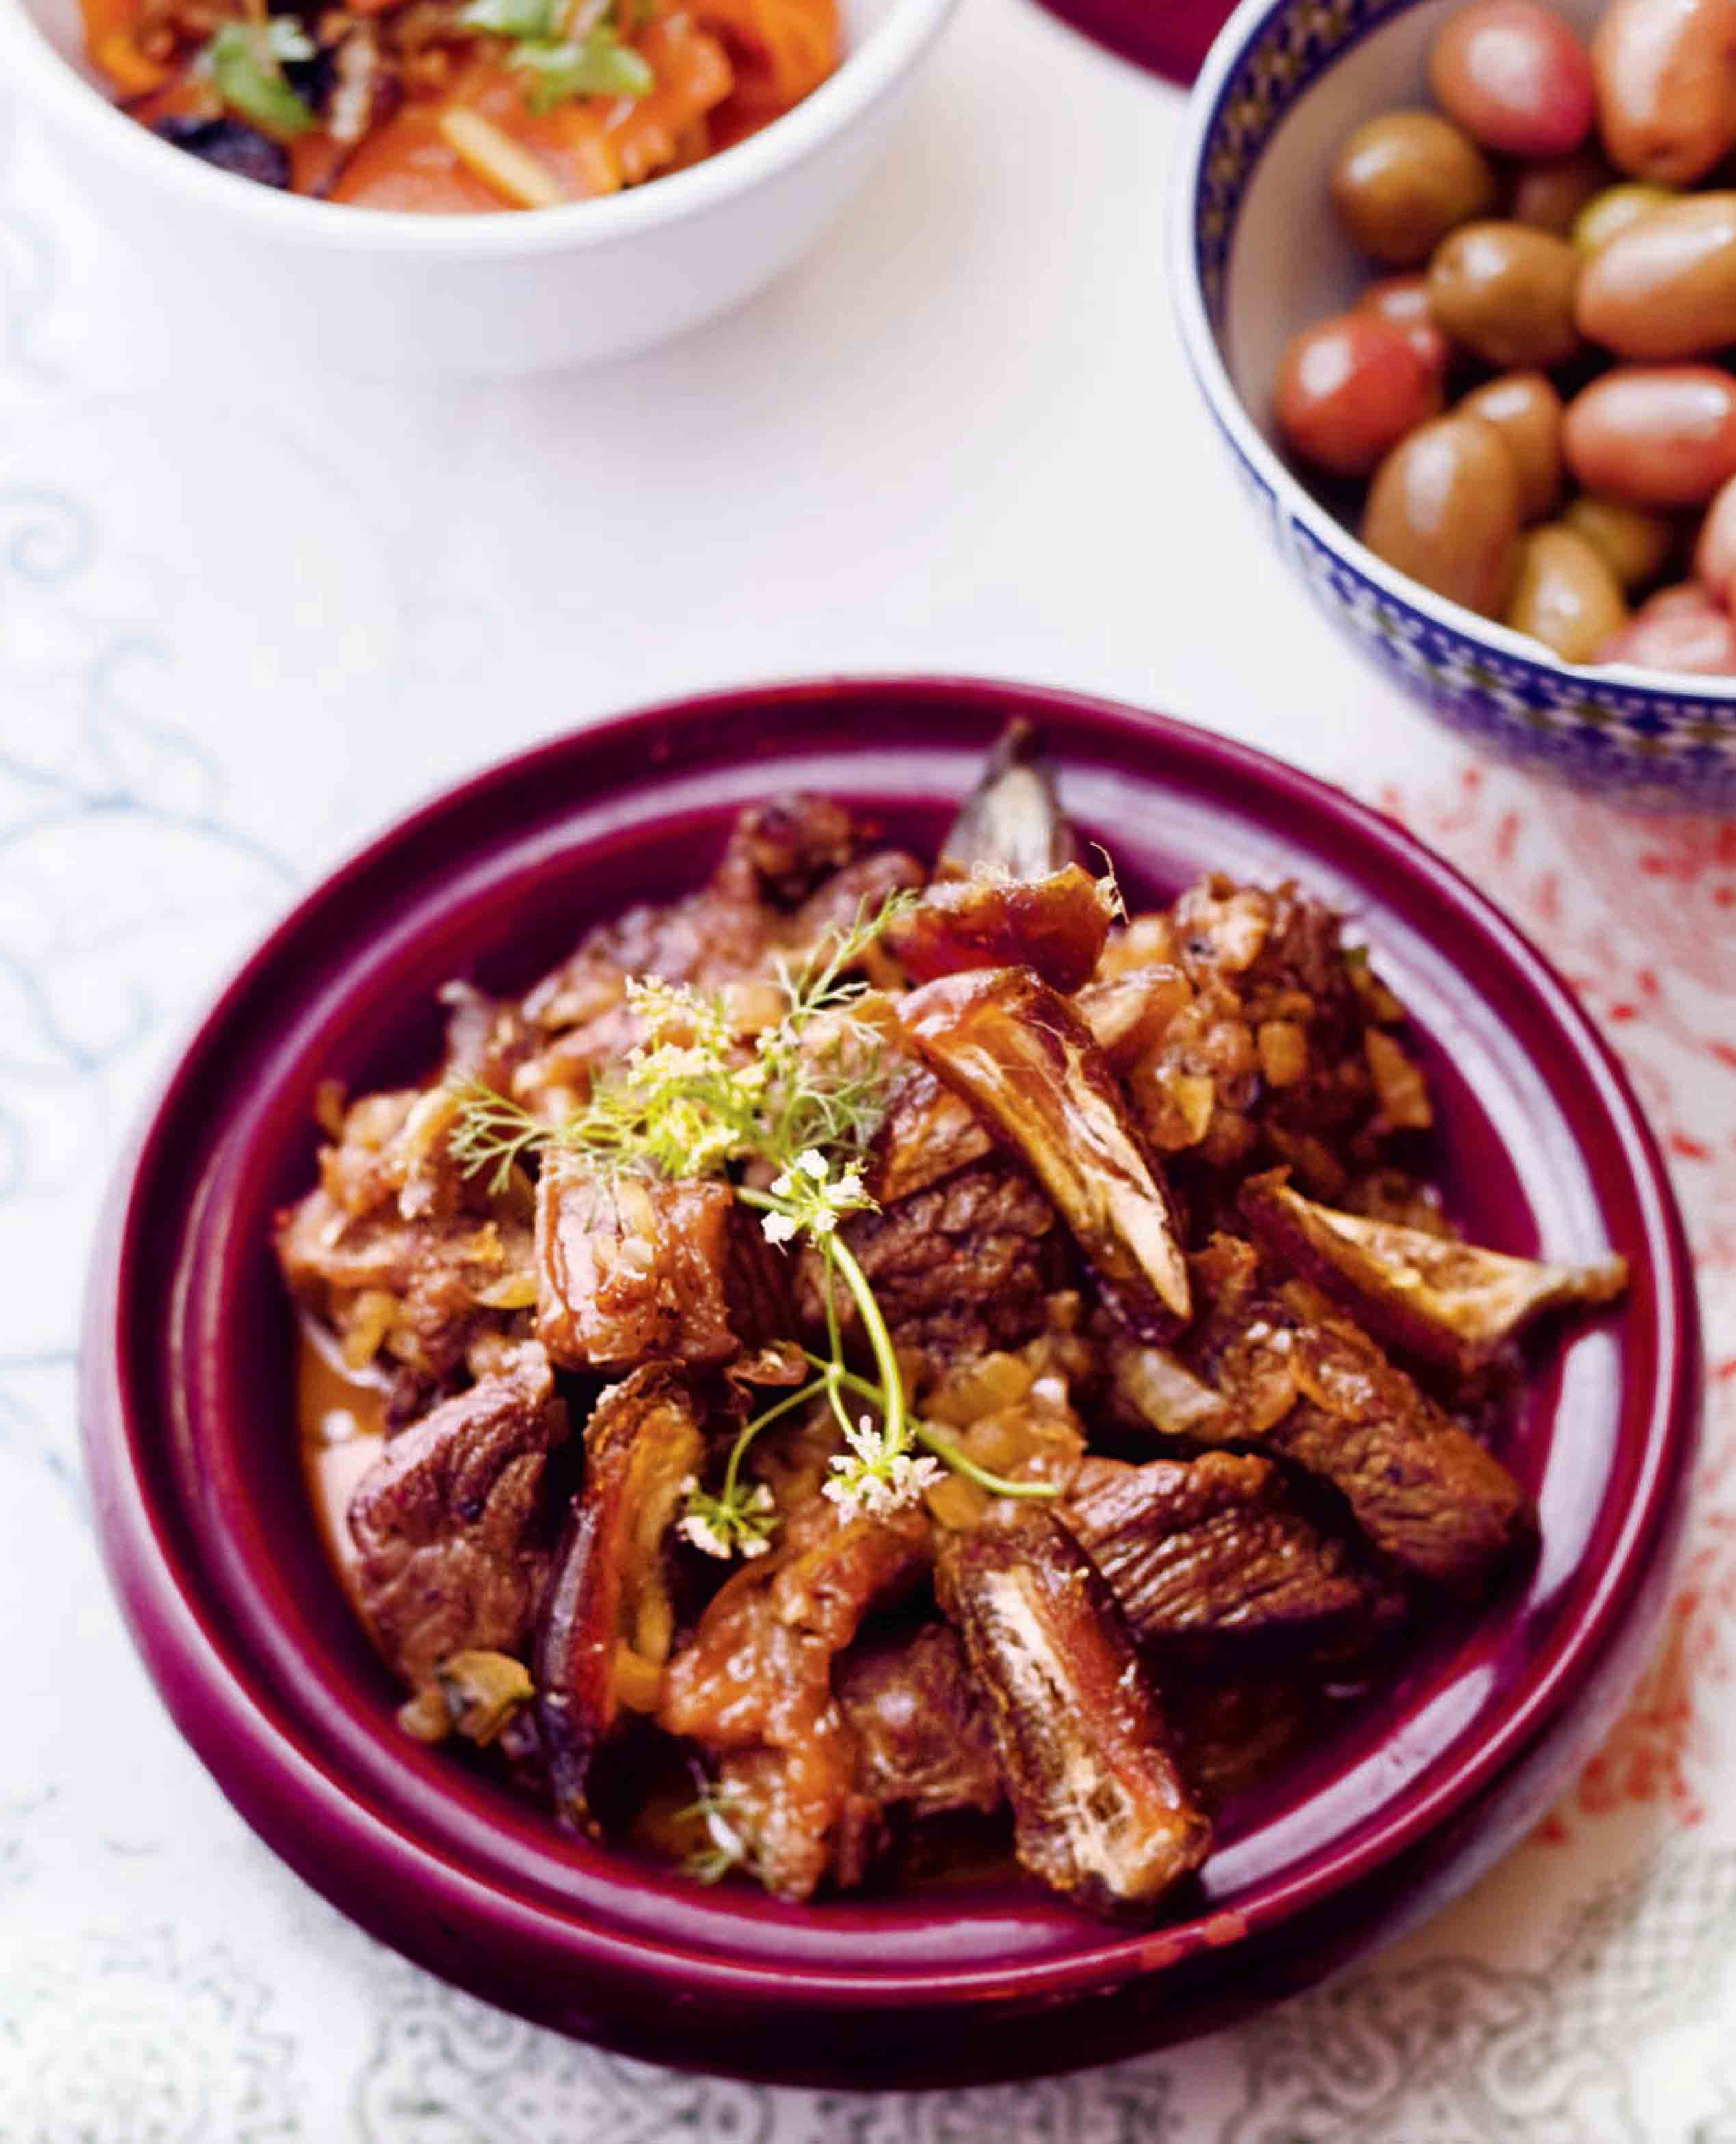 Lamb tagine with medjoul dates